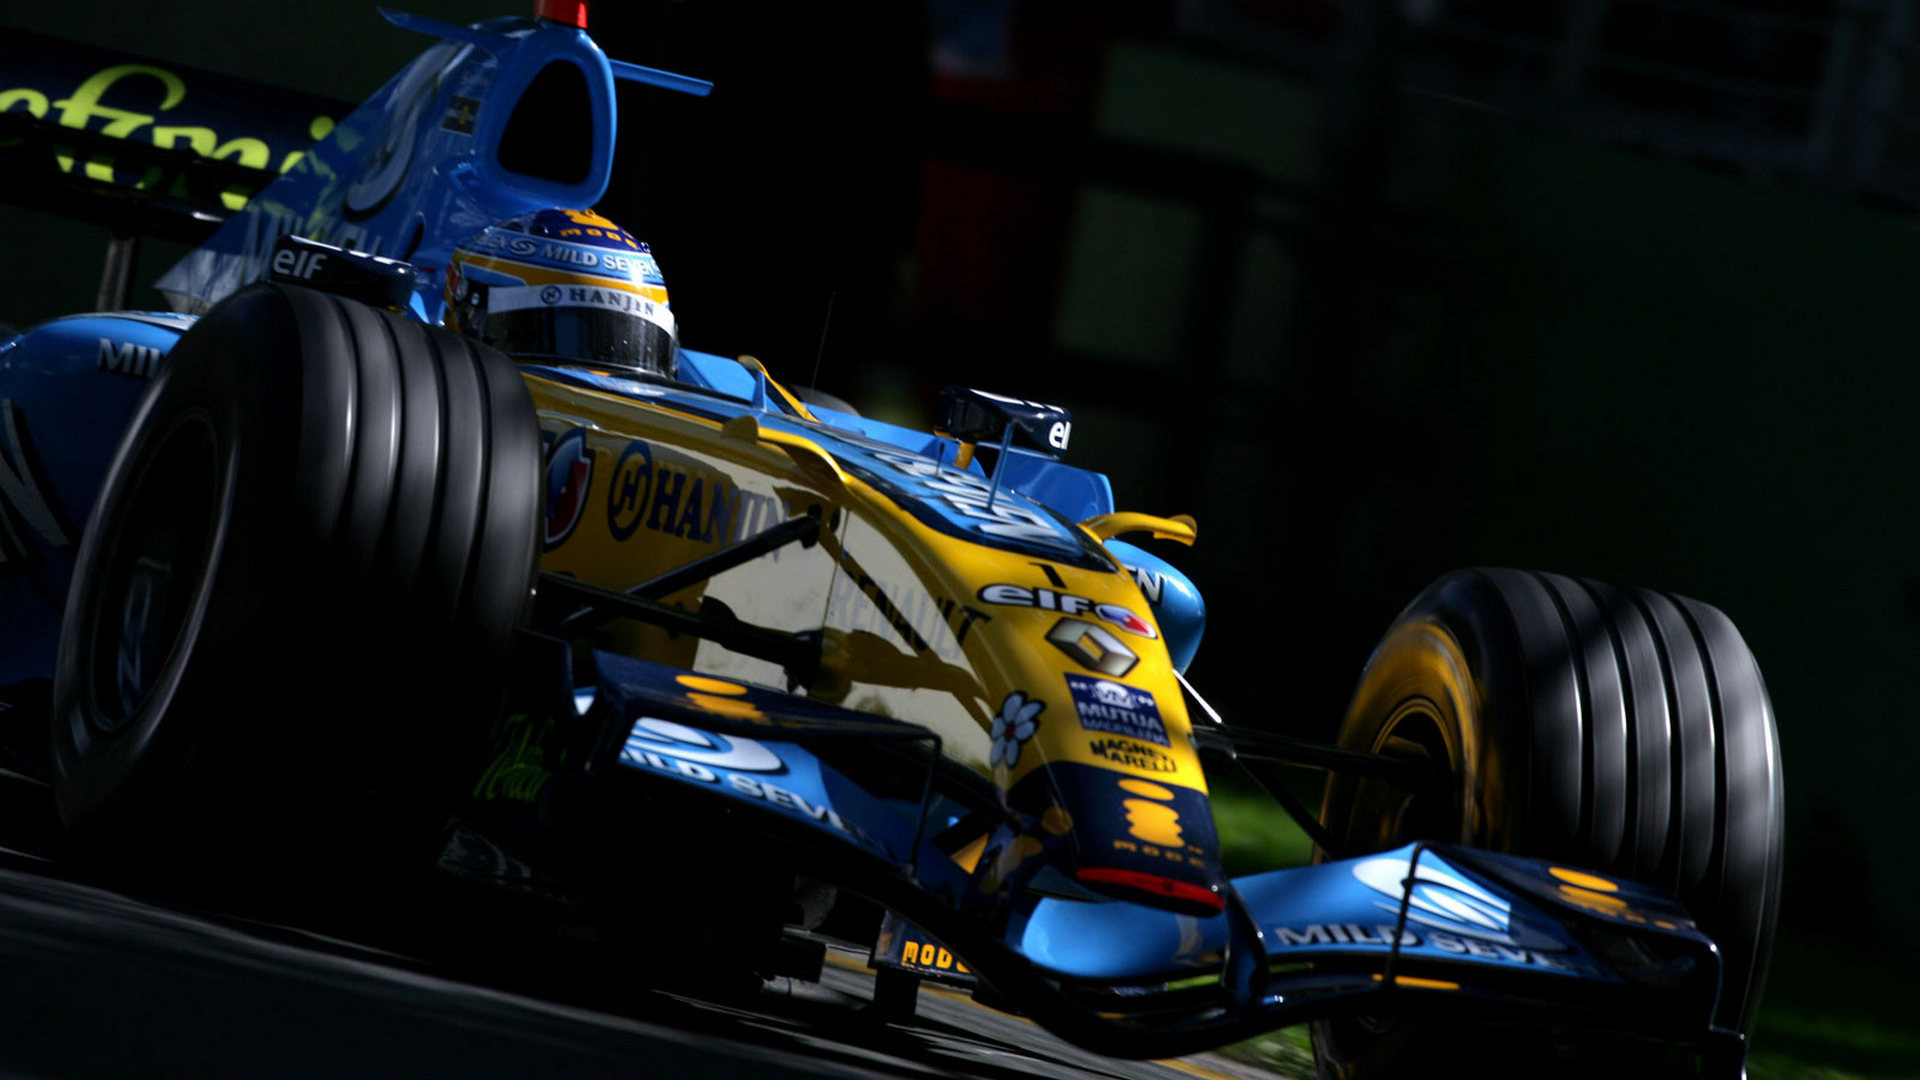 F1: Formula 1 Wallpapers HD (77+ Images